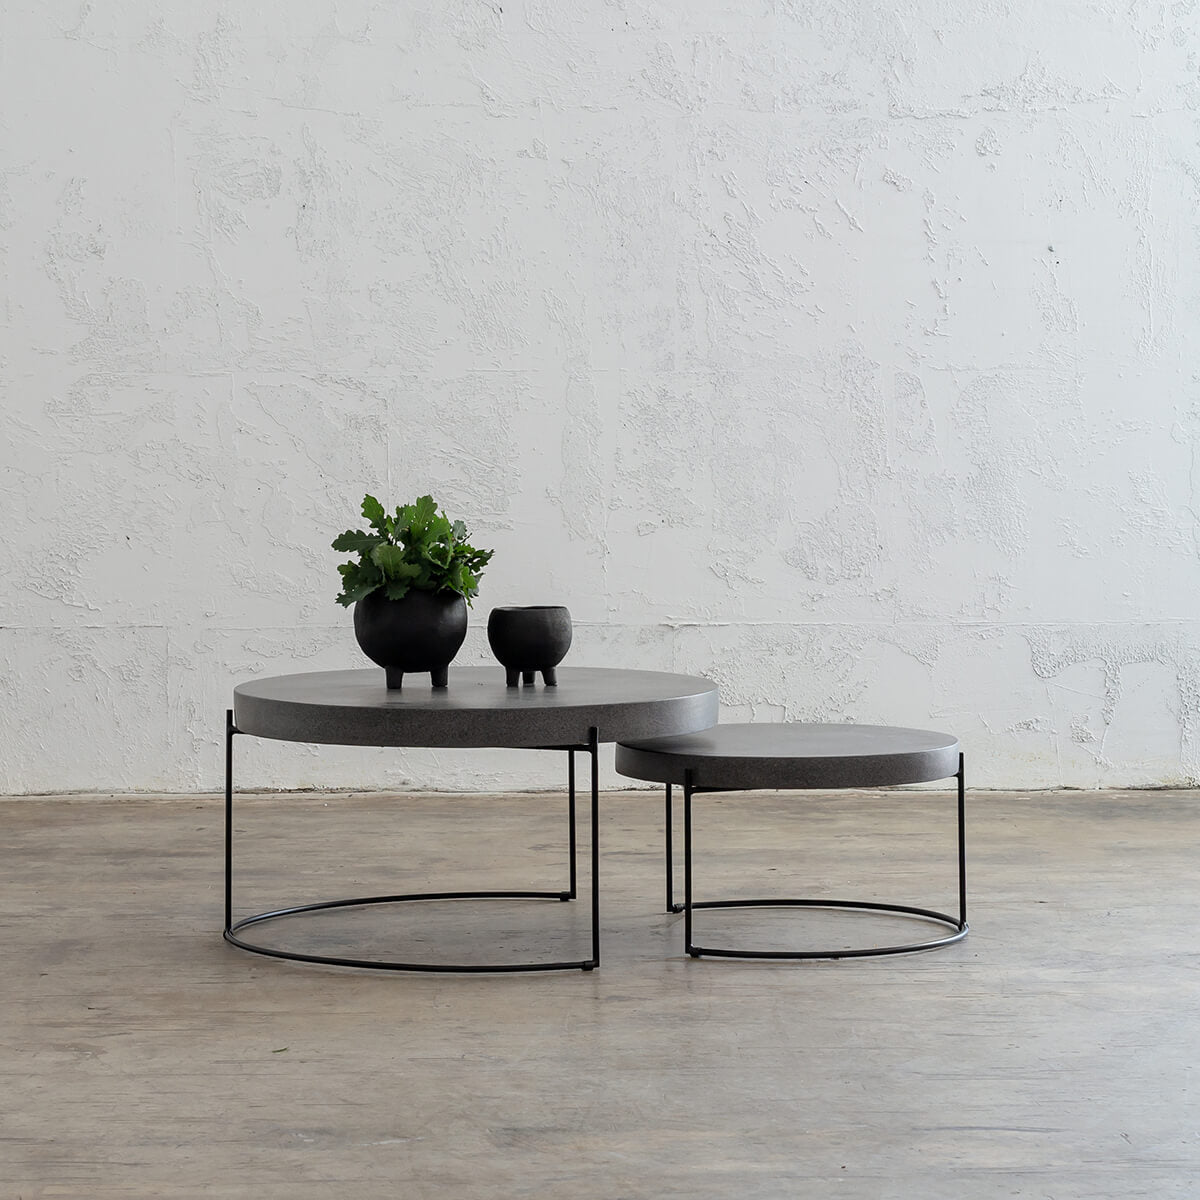 ARIA CONCRETE GRANITE COFFEE TABLE BUNDLE  |  2 x COFFEE TABLES   |  ROUND  |  CLASSIC MID GREY